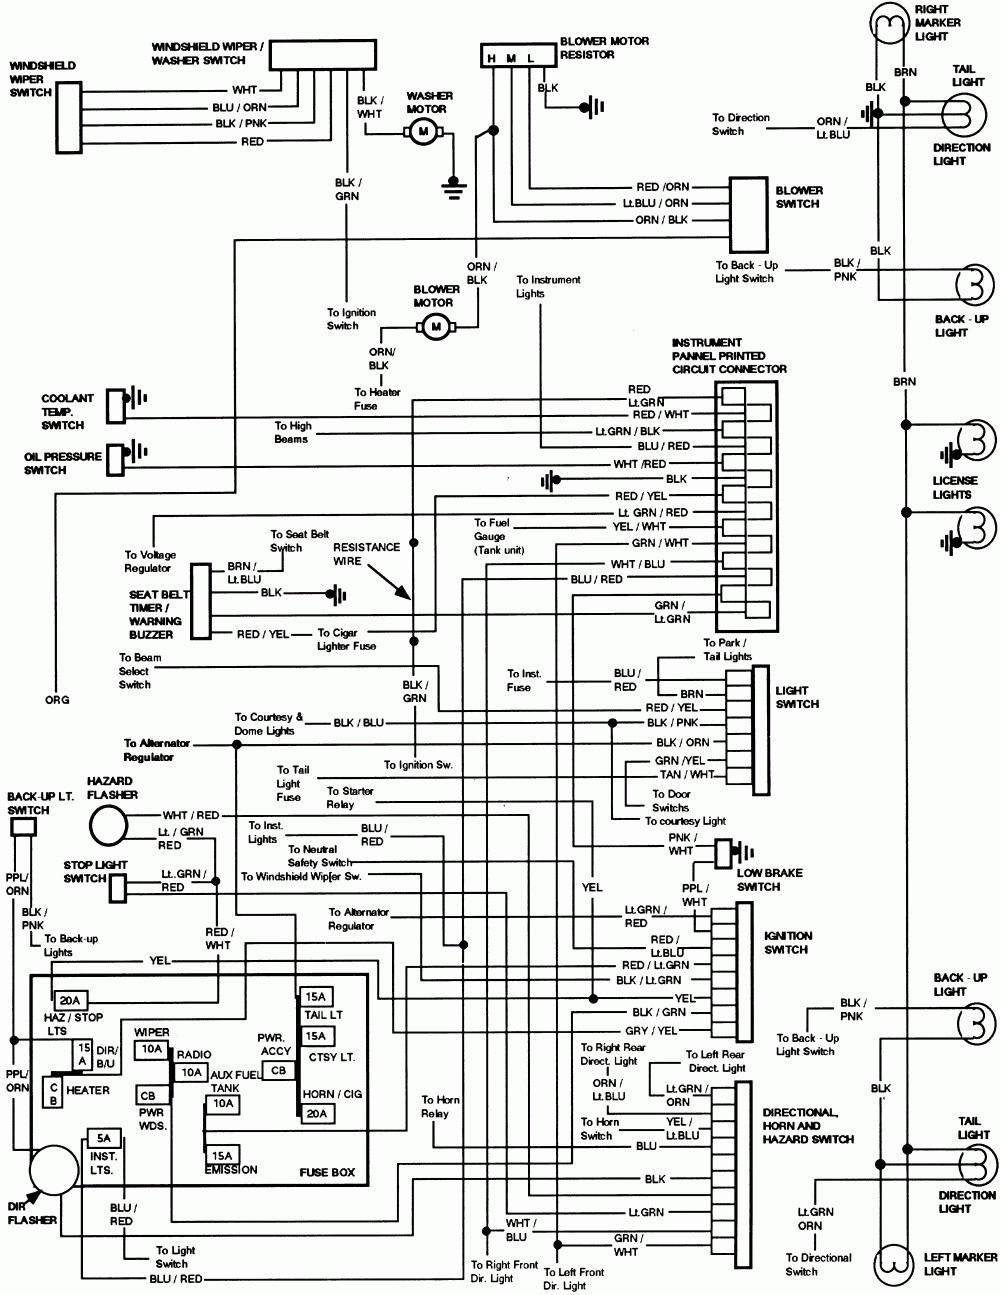 hight resolution of 1996 f700 wiring diagram wiring diagram schematics 1987 dodge ram 150 wiring diagram 1987 ford e350